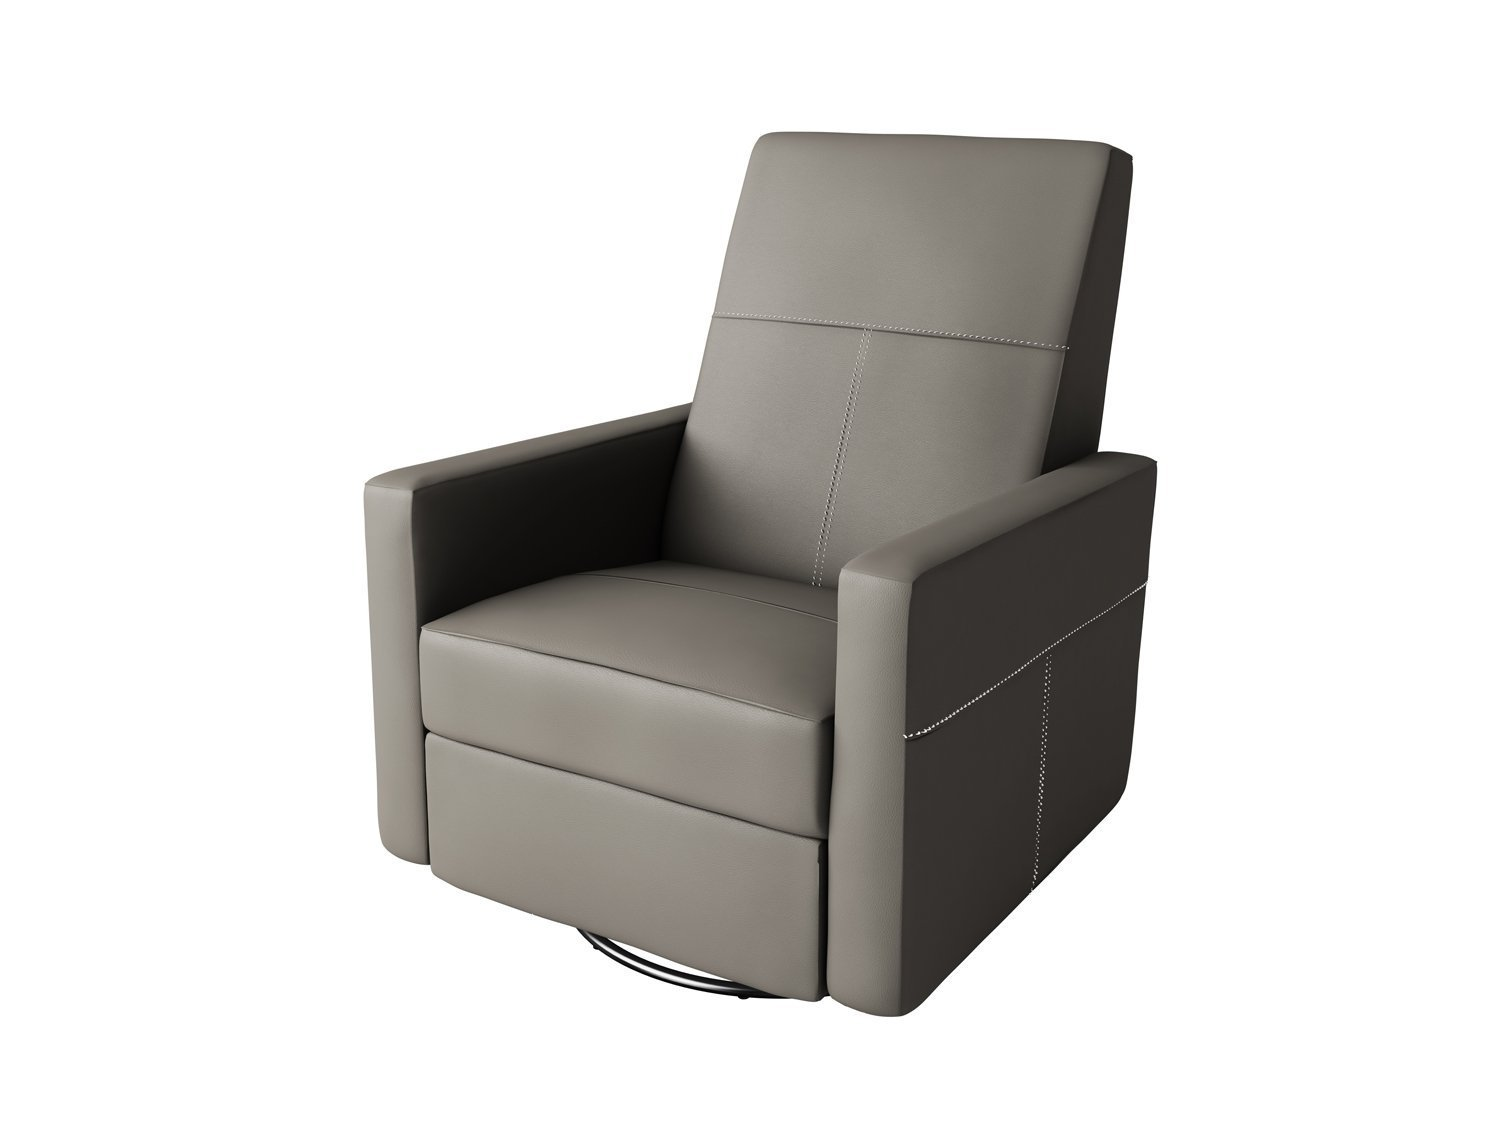 Dutailier Ultramotion | Dutailier Glider Recliner and Ottoman | Canadian Glider Chair